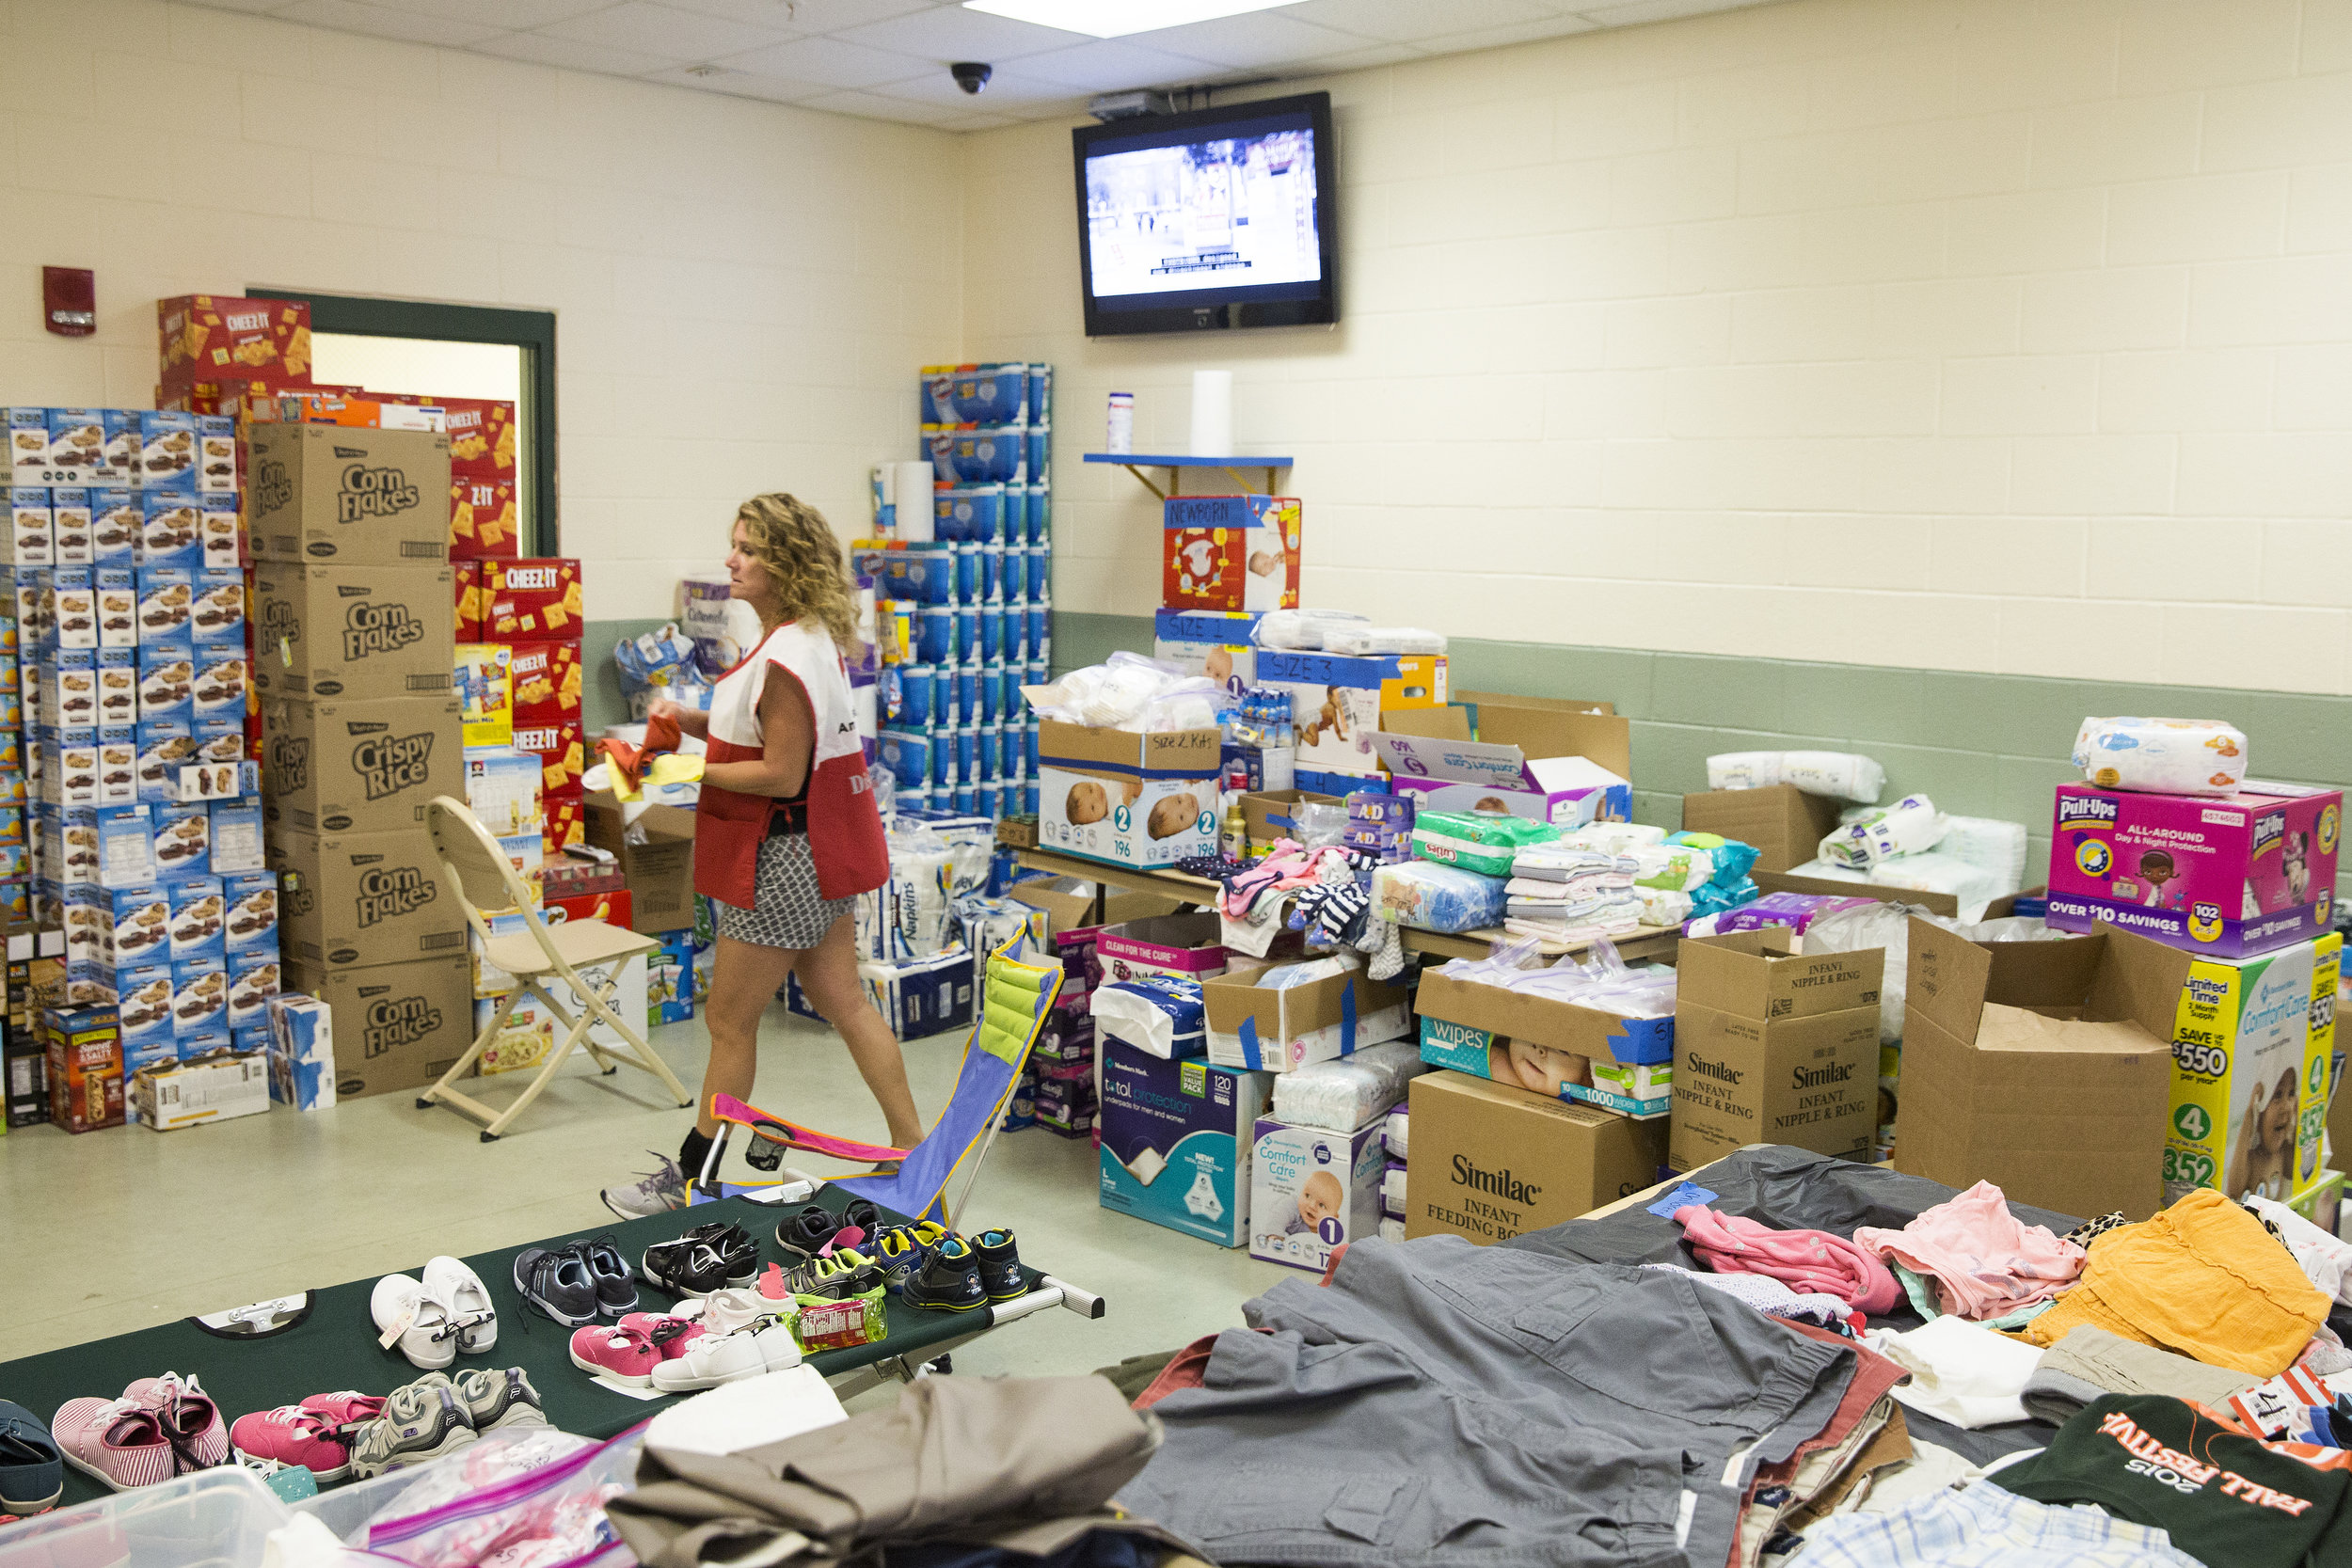 Volunteer Nicci Garcia works to manage a room of food, clothing and hygiene supplies at the American Red Cross' shelter in the Estero Recreational Center on Wednesday, September 20, 2017.